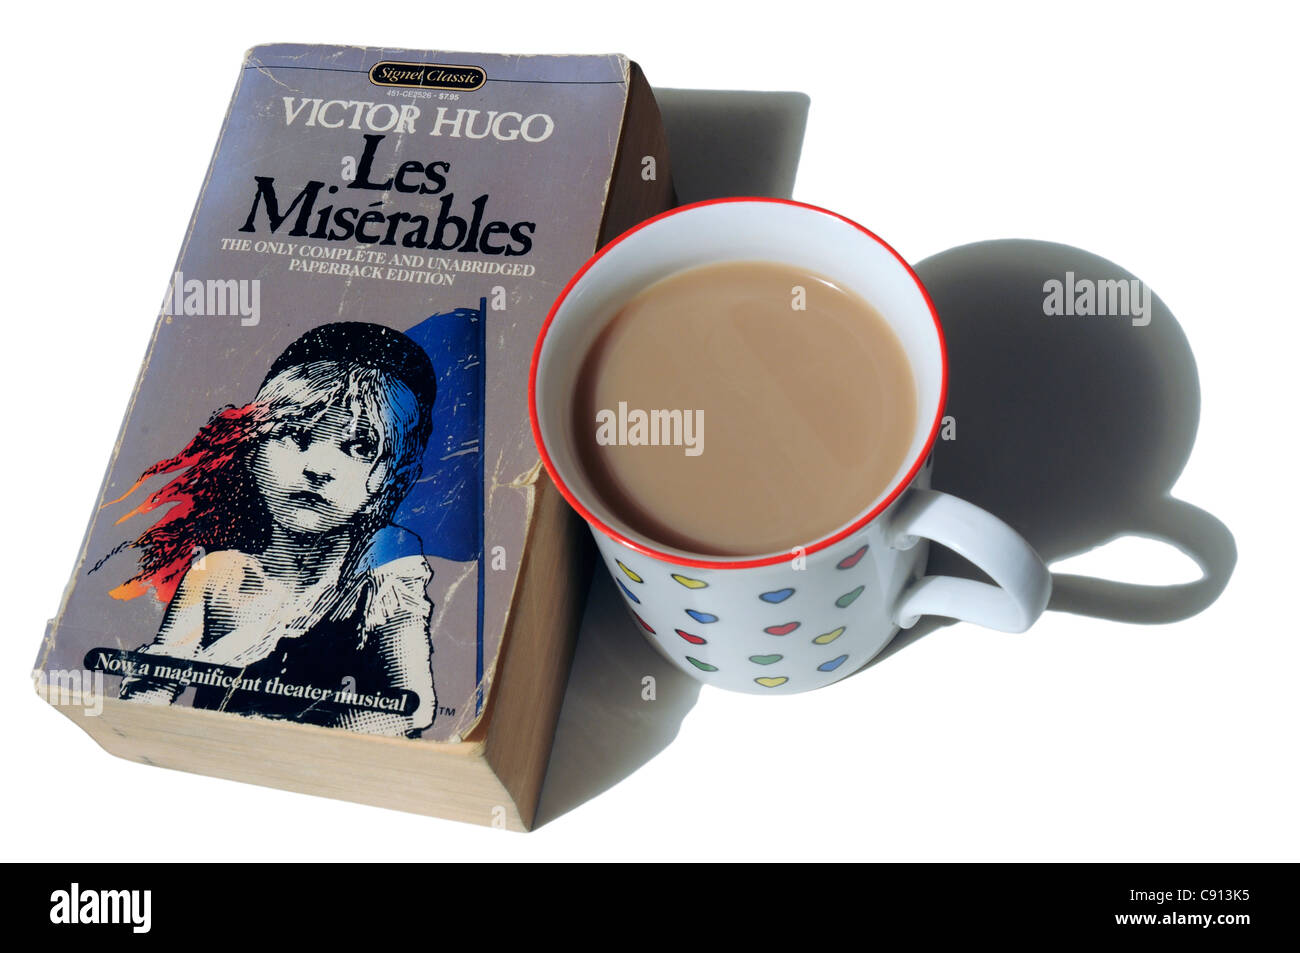 Les Miserables by Victor Hugo - Stock Image